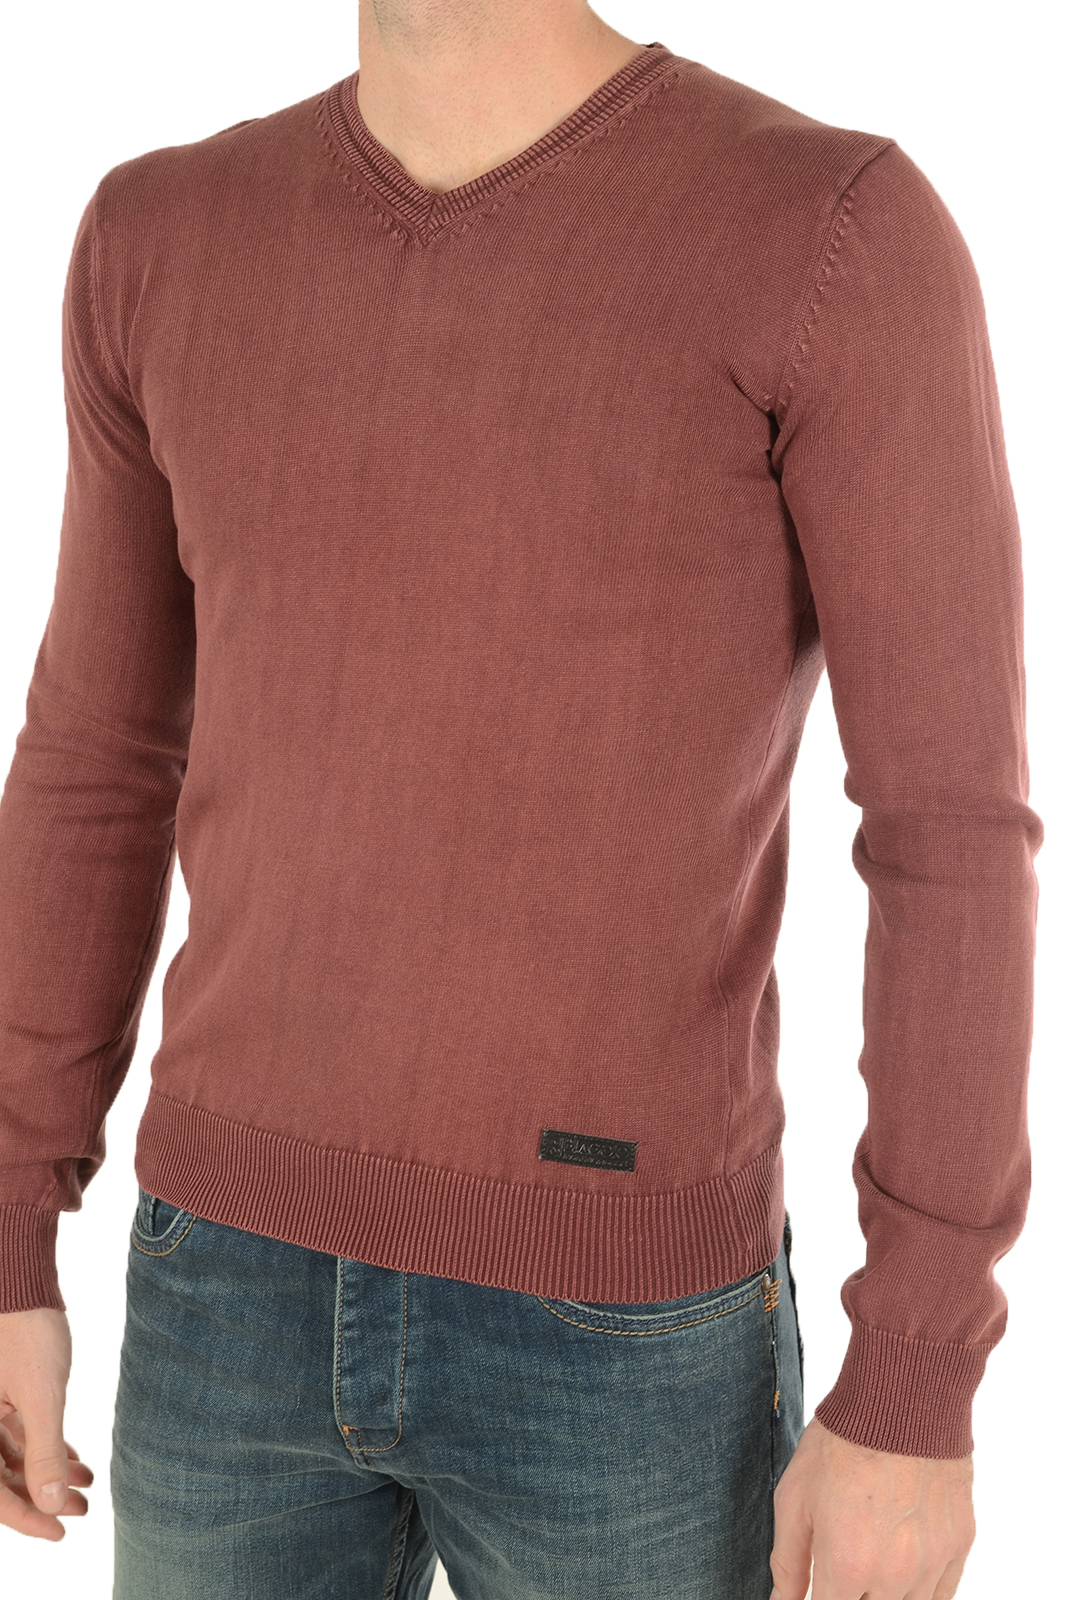 Pulls  Biaggio jeans PAZINAS BORDEAUX